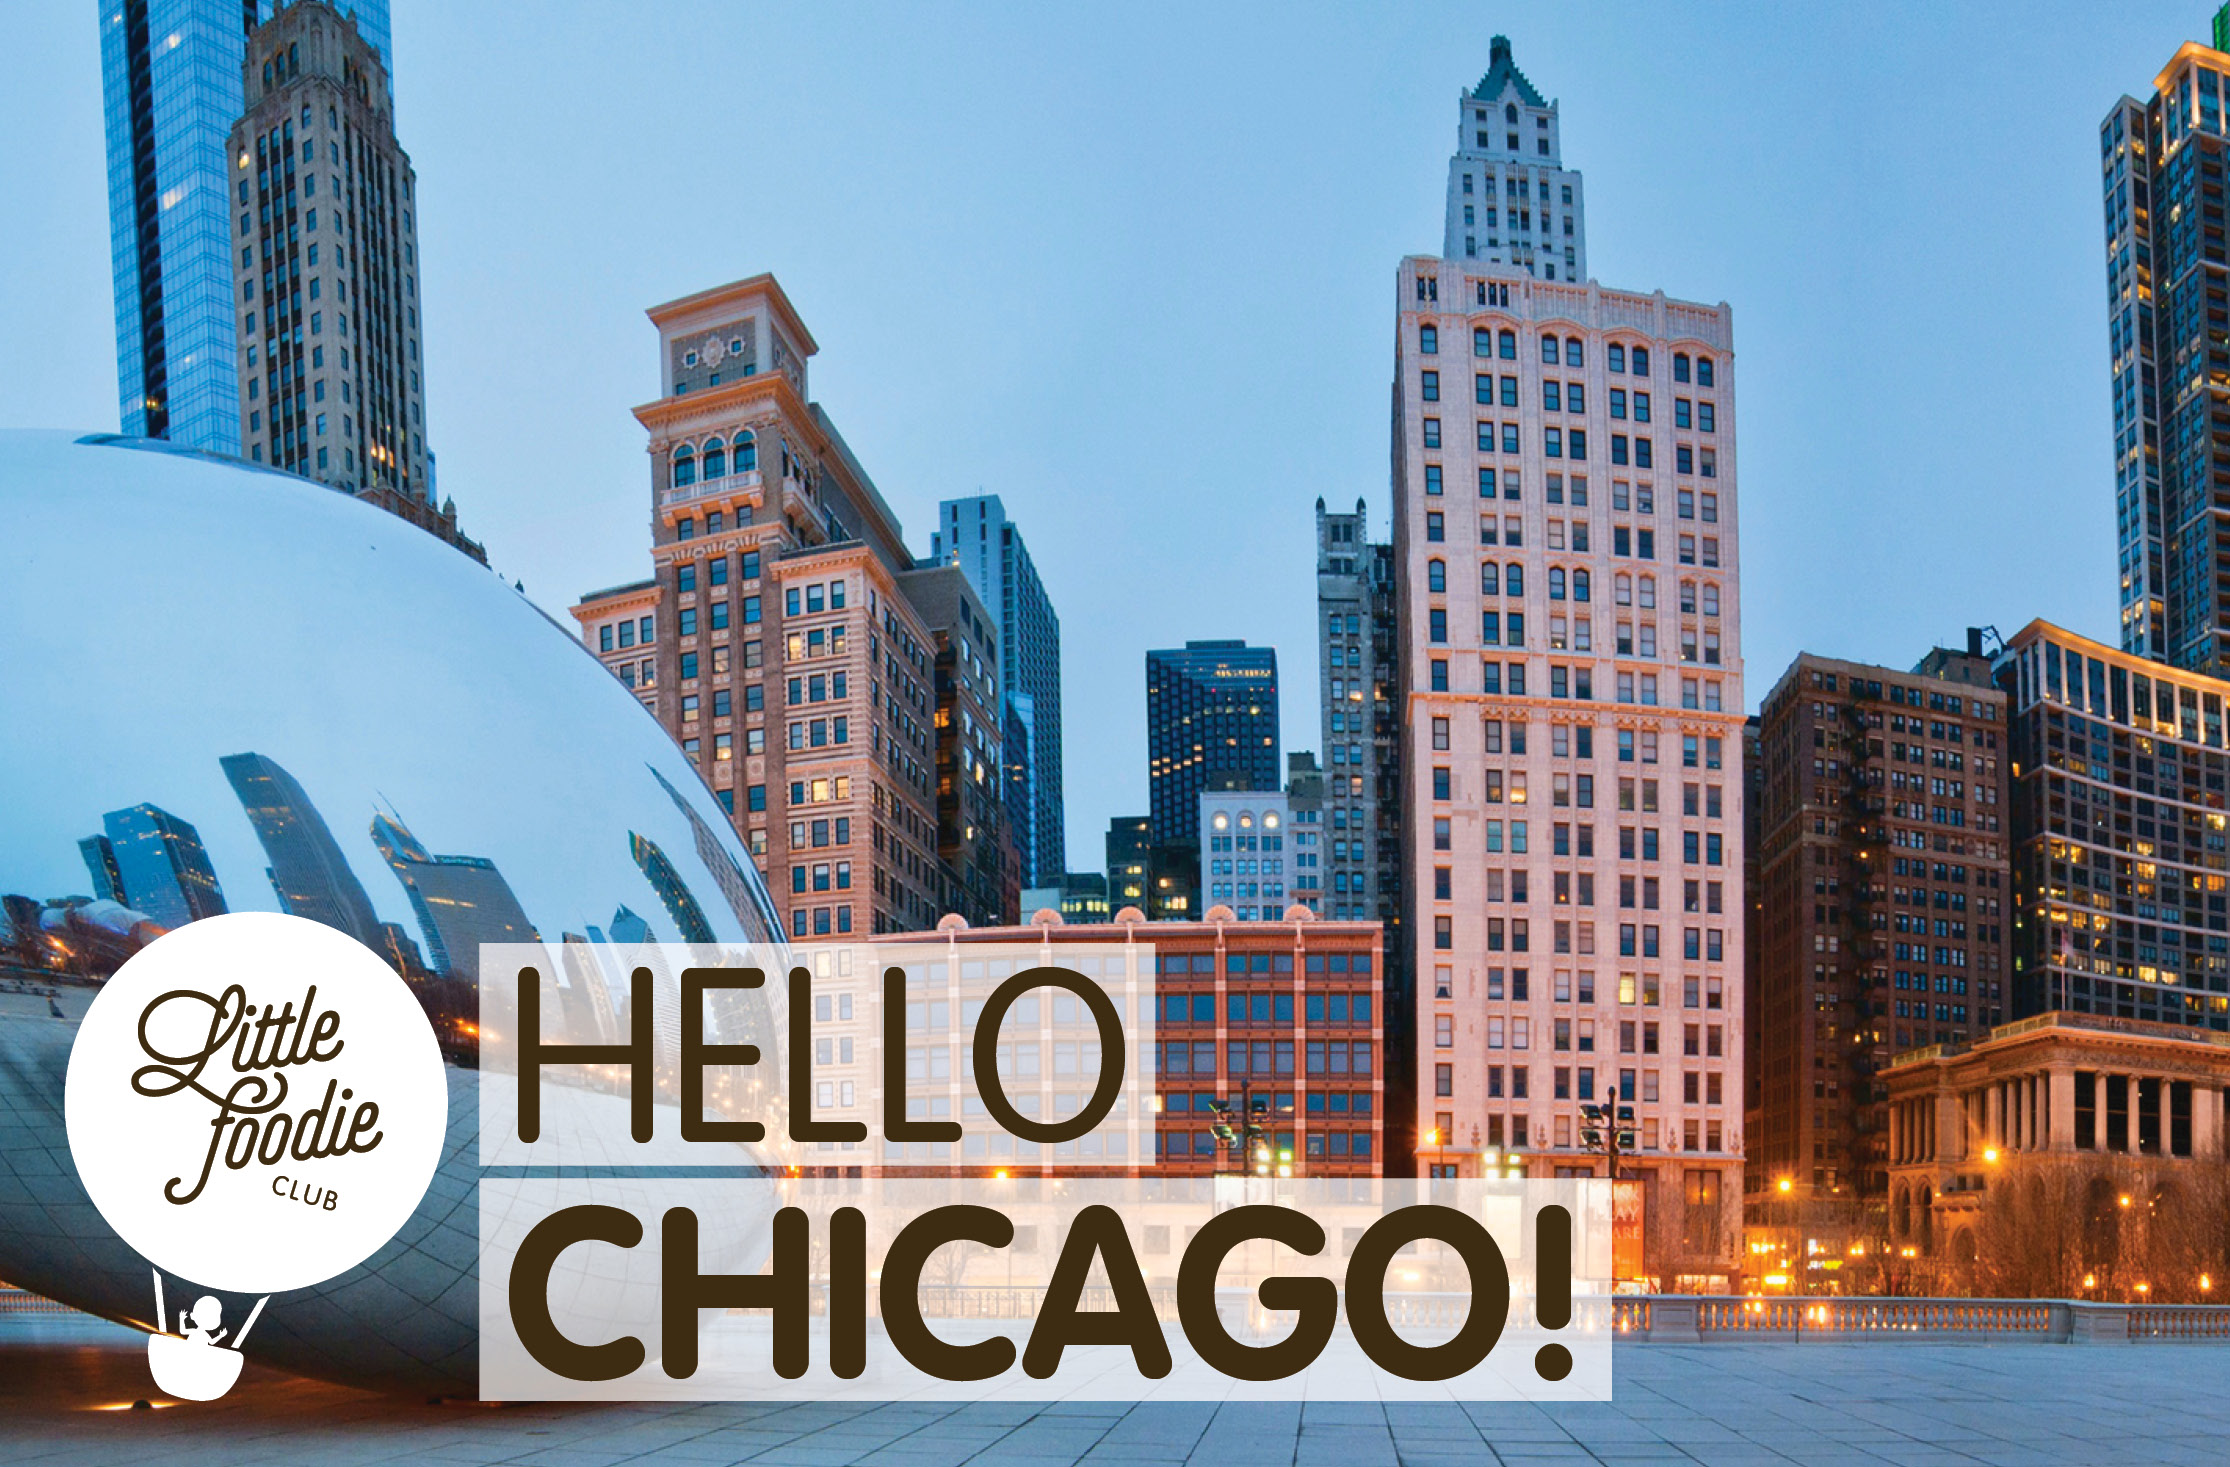 Chicago is tastier than ever, thanks to the arrival of Little Foodie Club!